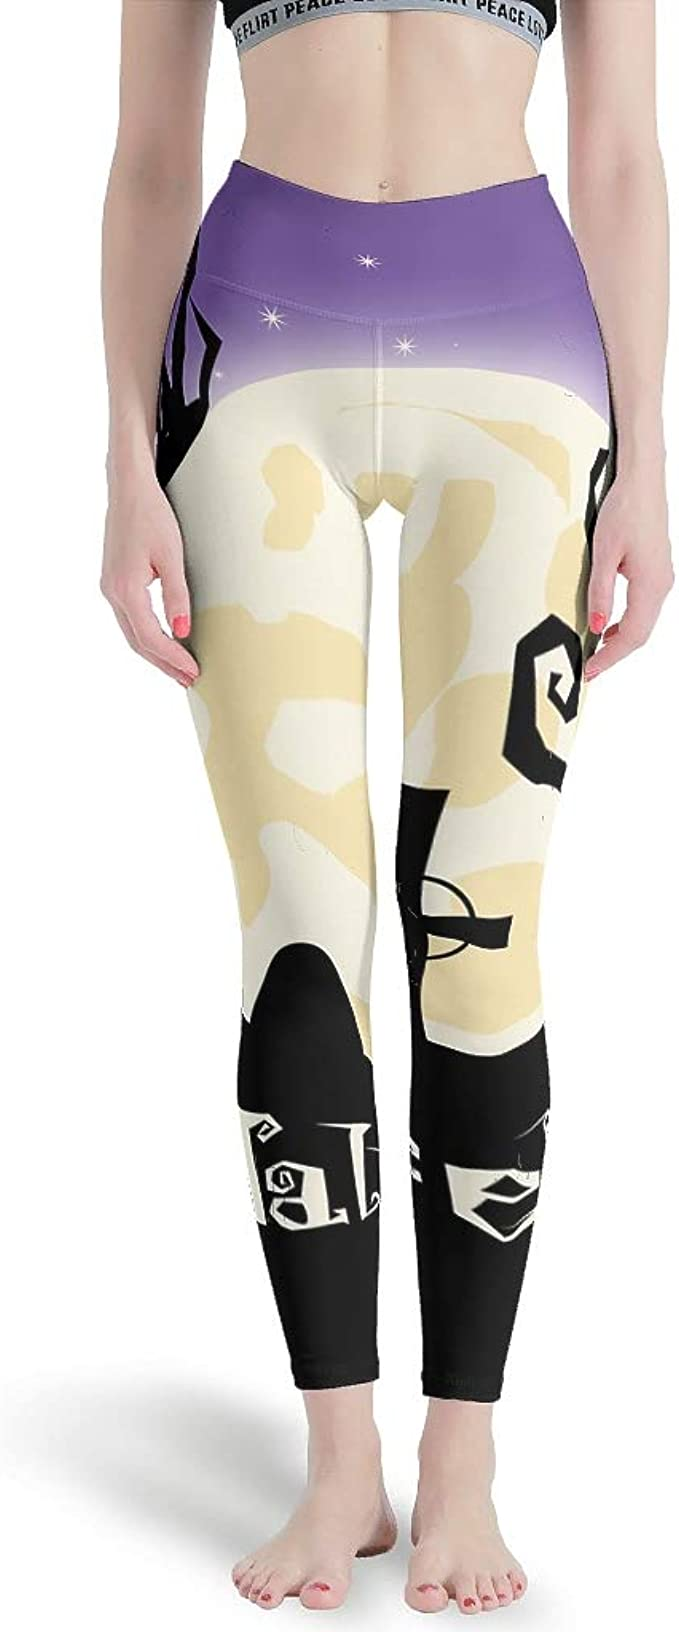 Yoga Make It Dirty Martini Women/'s Leggings Fun and playful patterns Workout Makes a great gift! Halloween